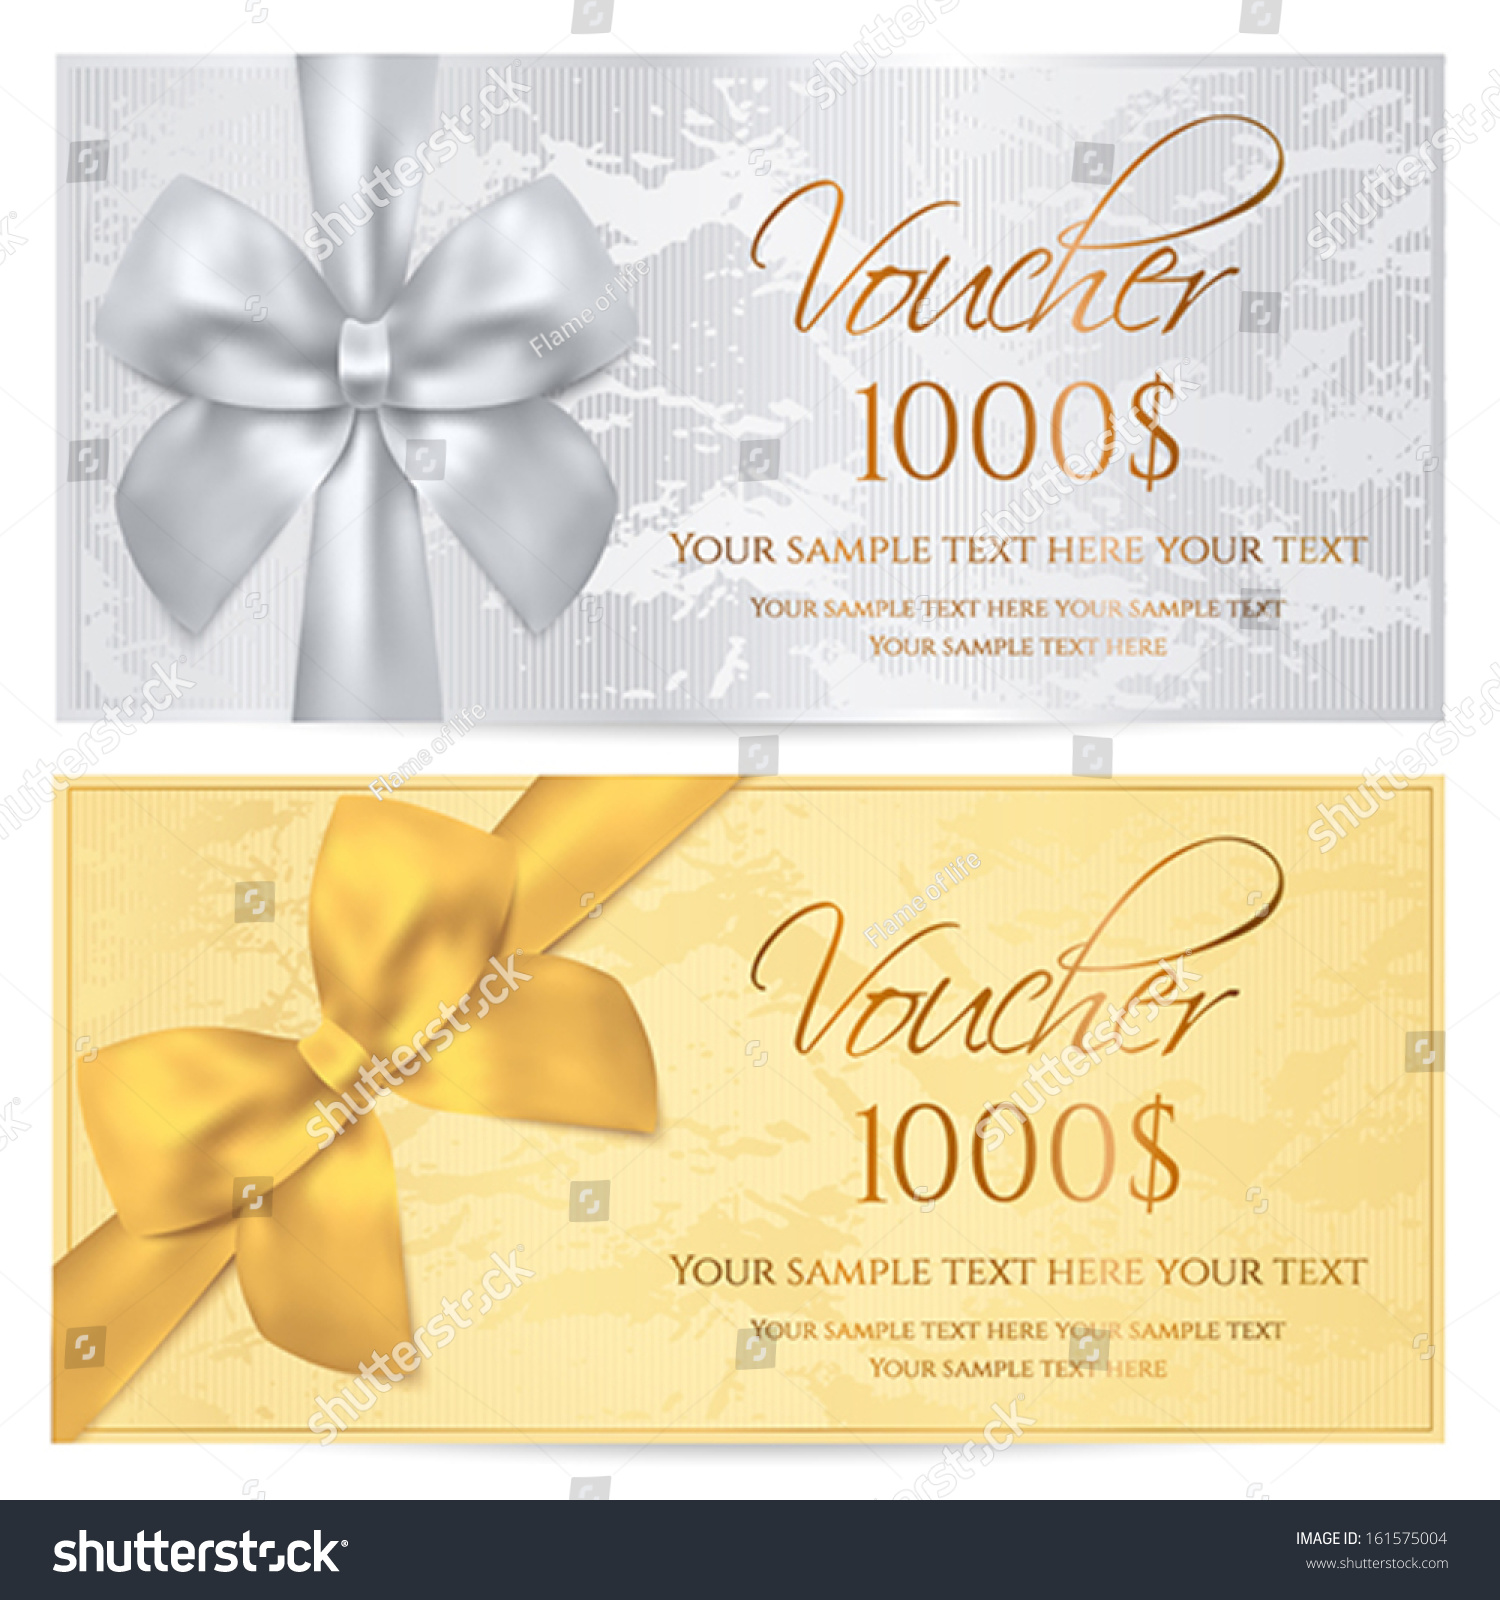 voucher gift certificate coupon template old stock vector voucher gift certificate coupon template old pattern gold bow silver background